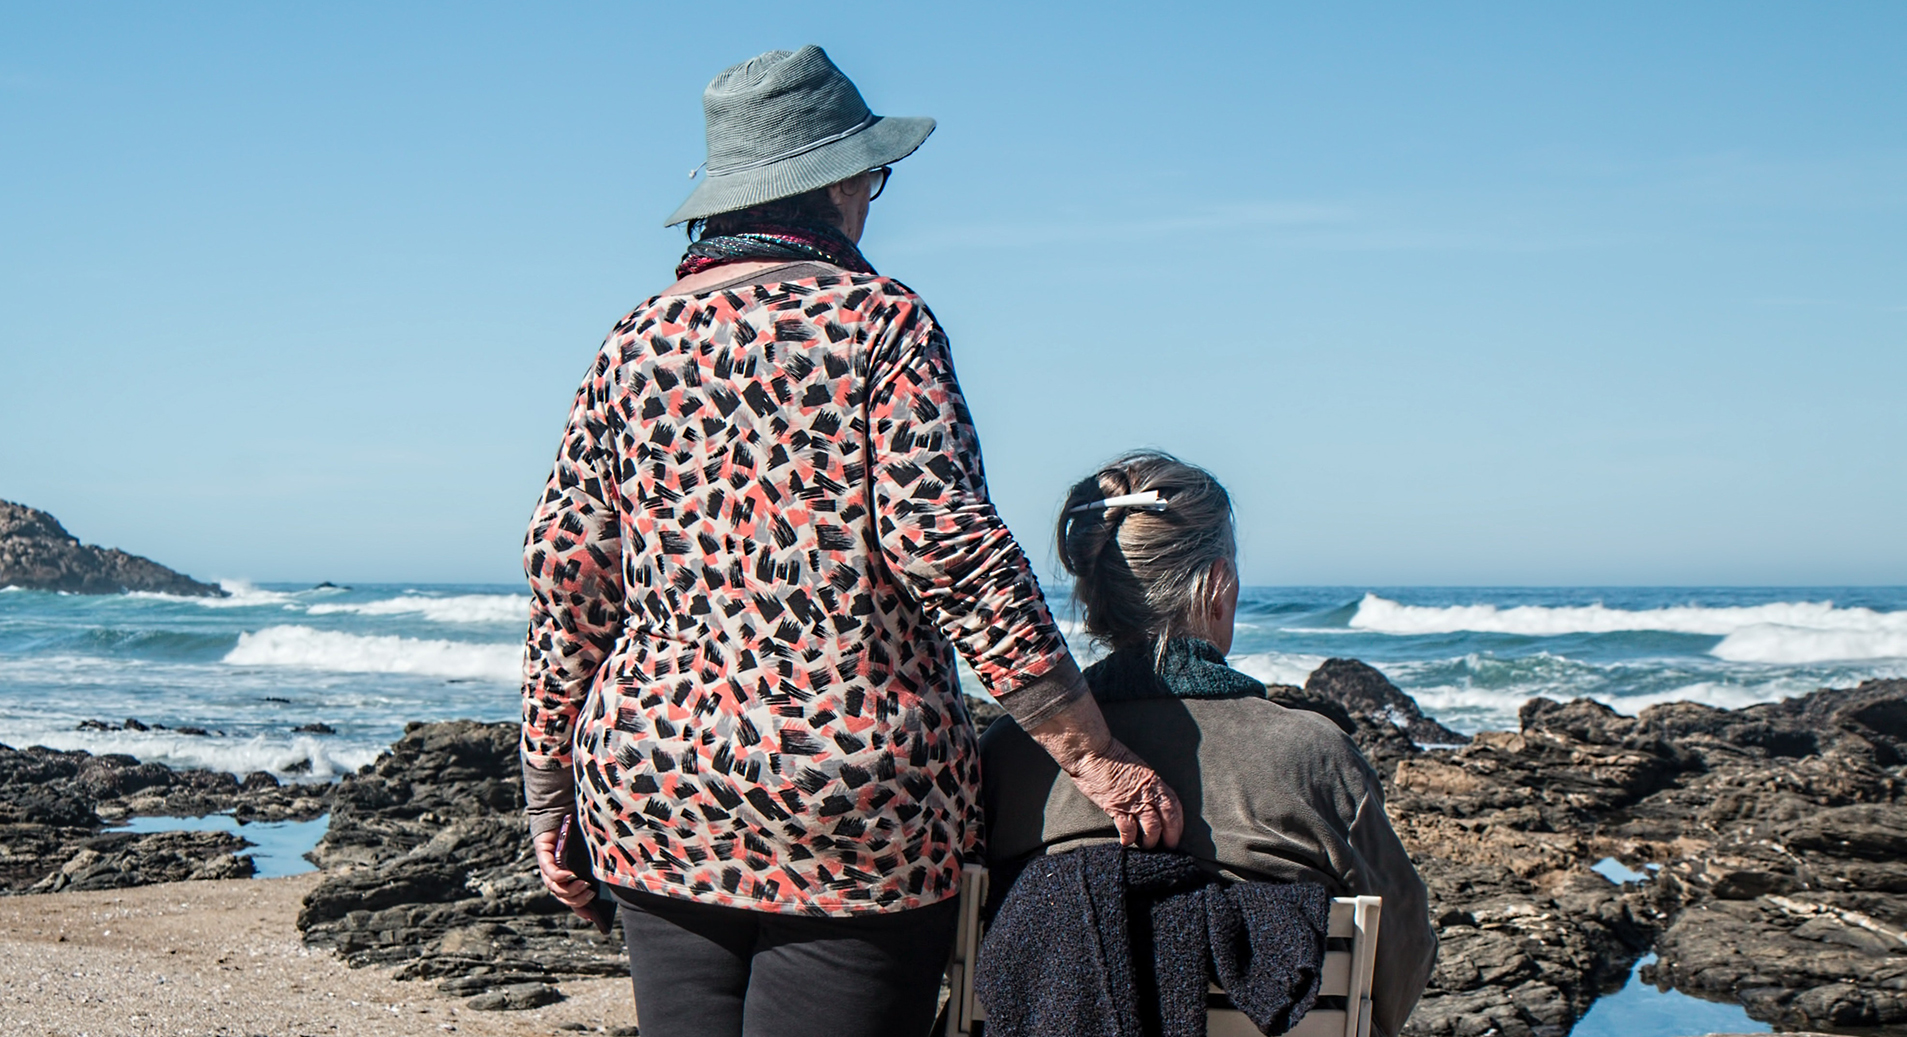 Two older women on a beach looking out to sea